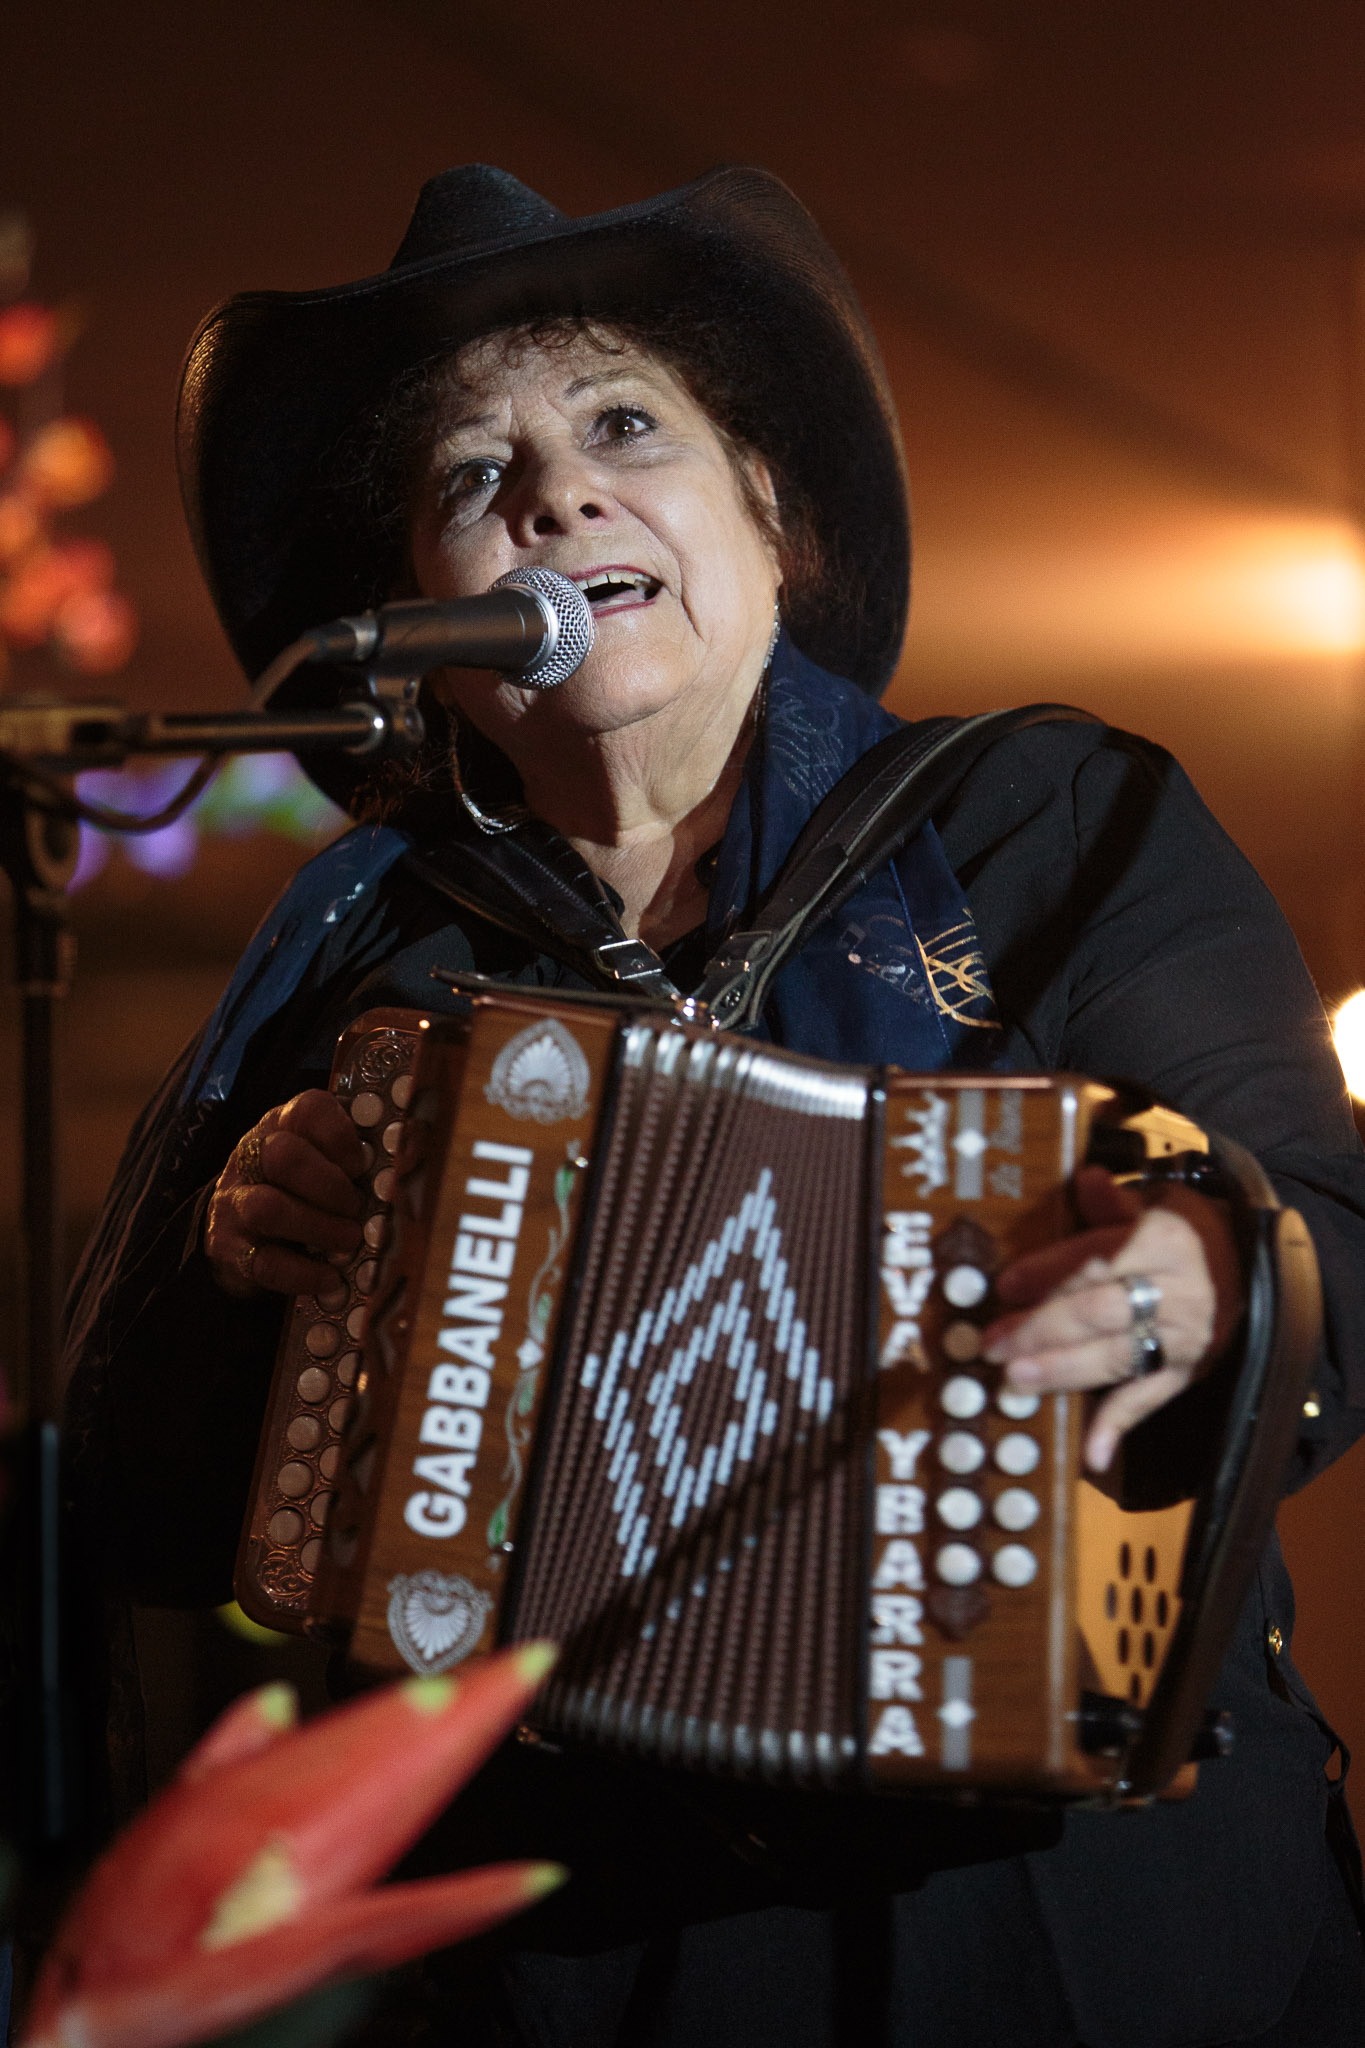 Eva Ybarra the 'Queen of the Accordion' performs alongside her band at the Institute of Texan Cultures following being honored as a National Heritage Fellow from the National Endowment of the Arts.